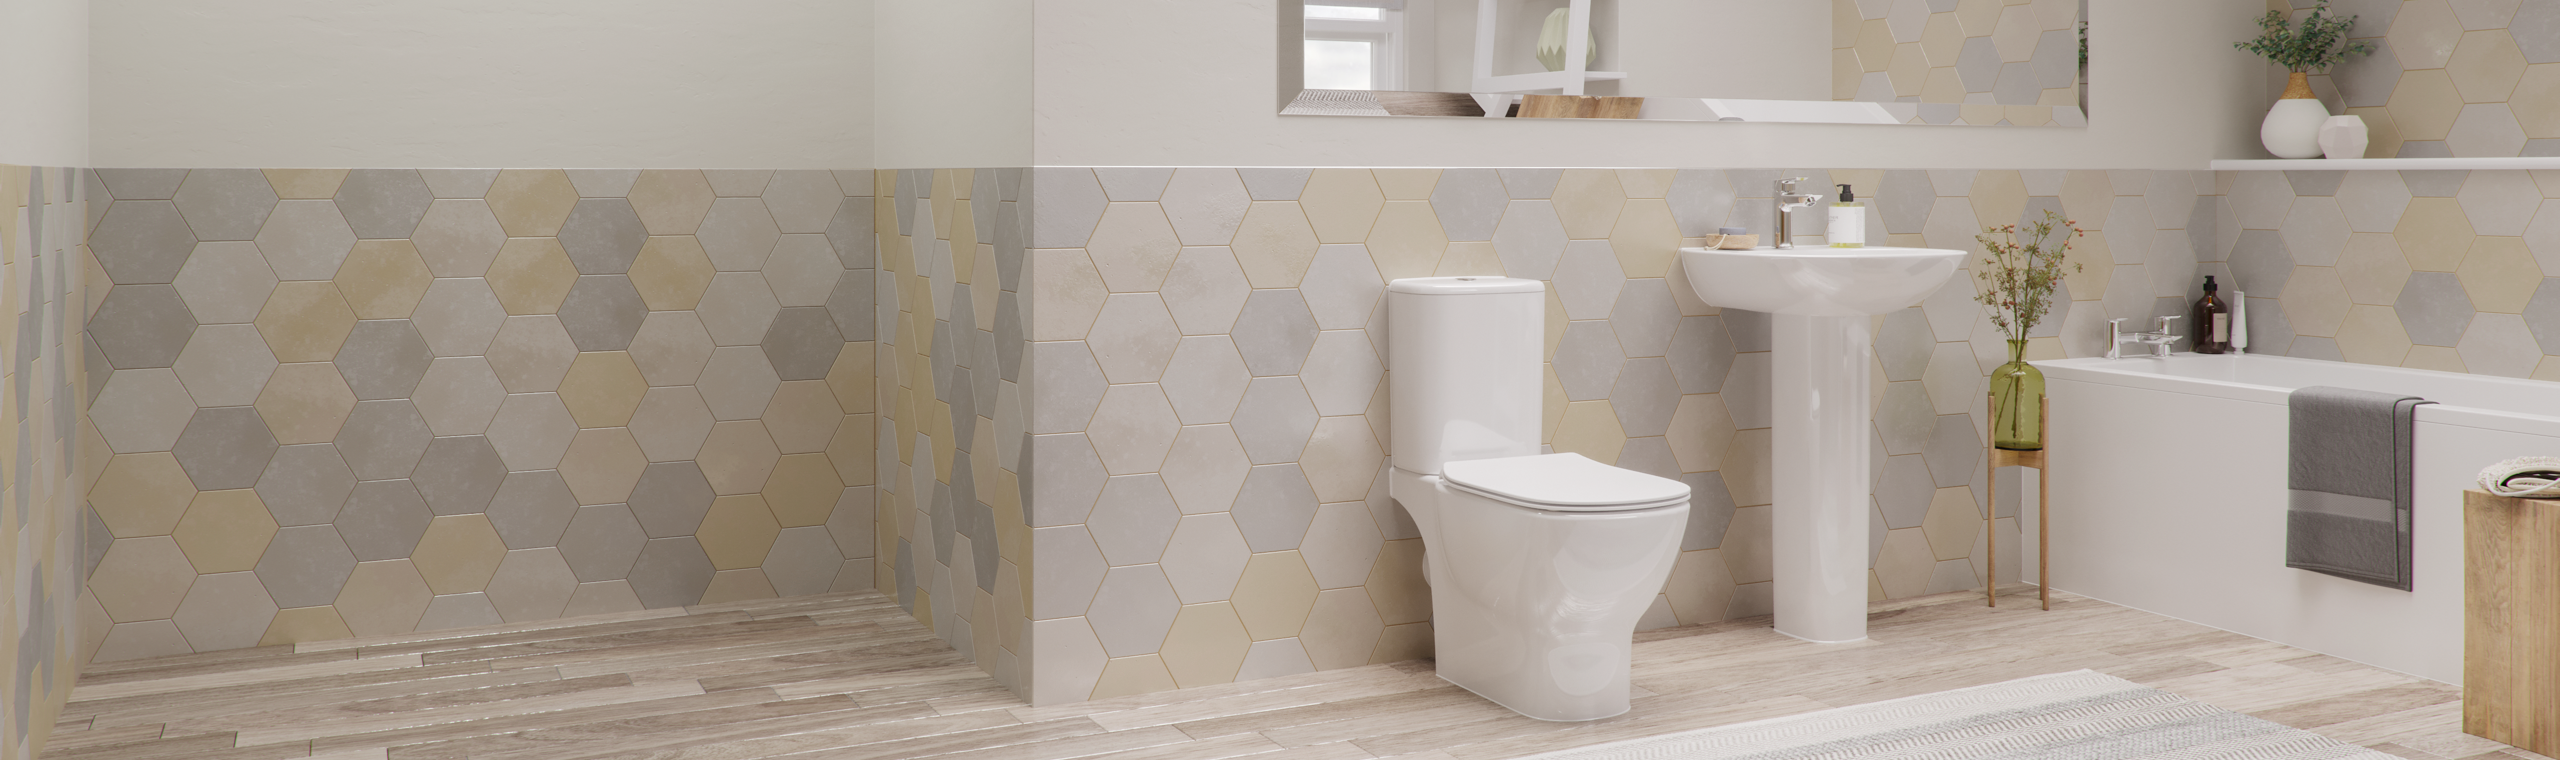 An contemporary Ideal Standard bathroom suite featuring a toilet, sink and bath